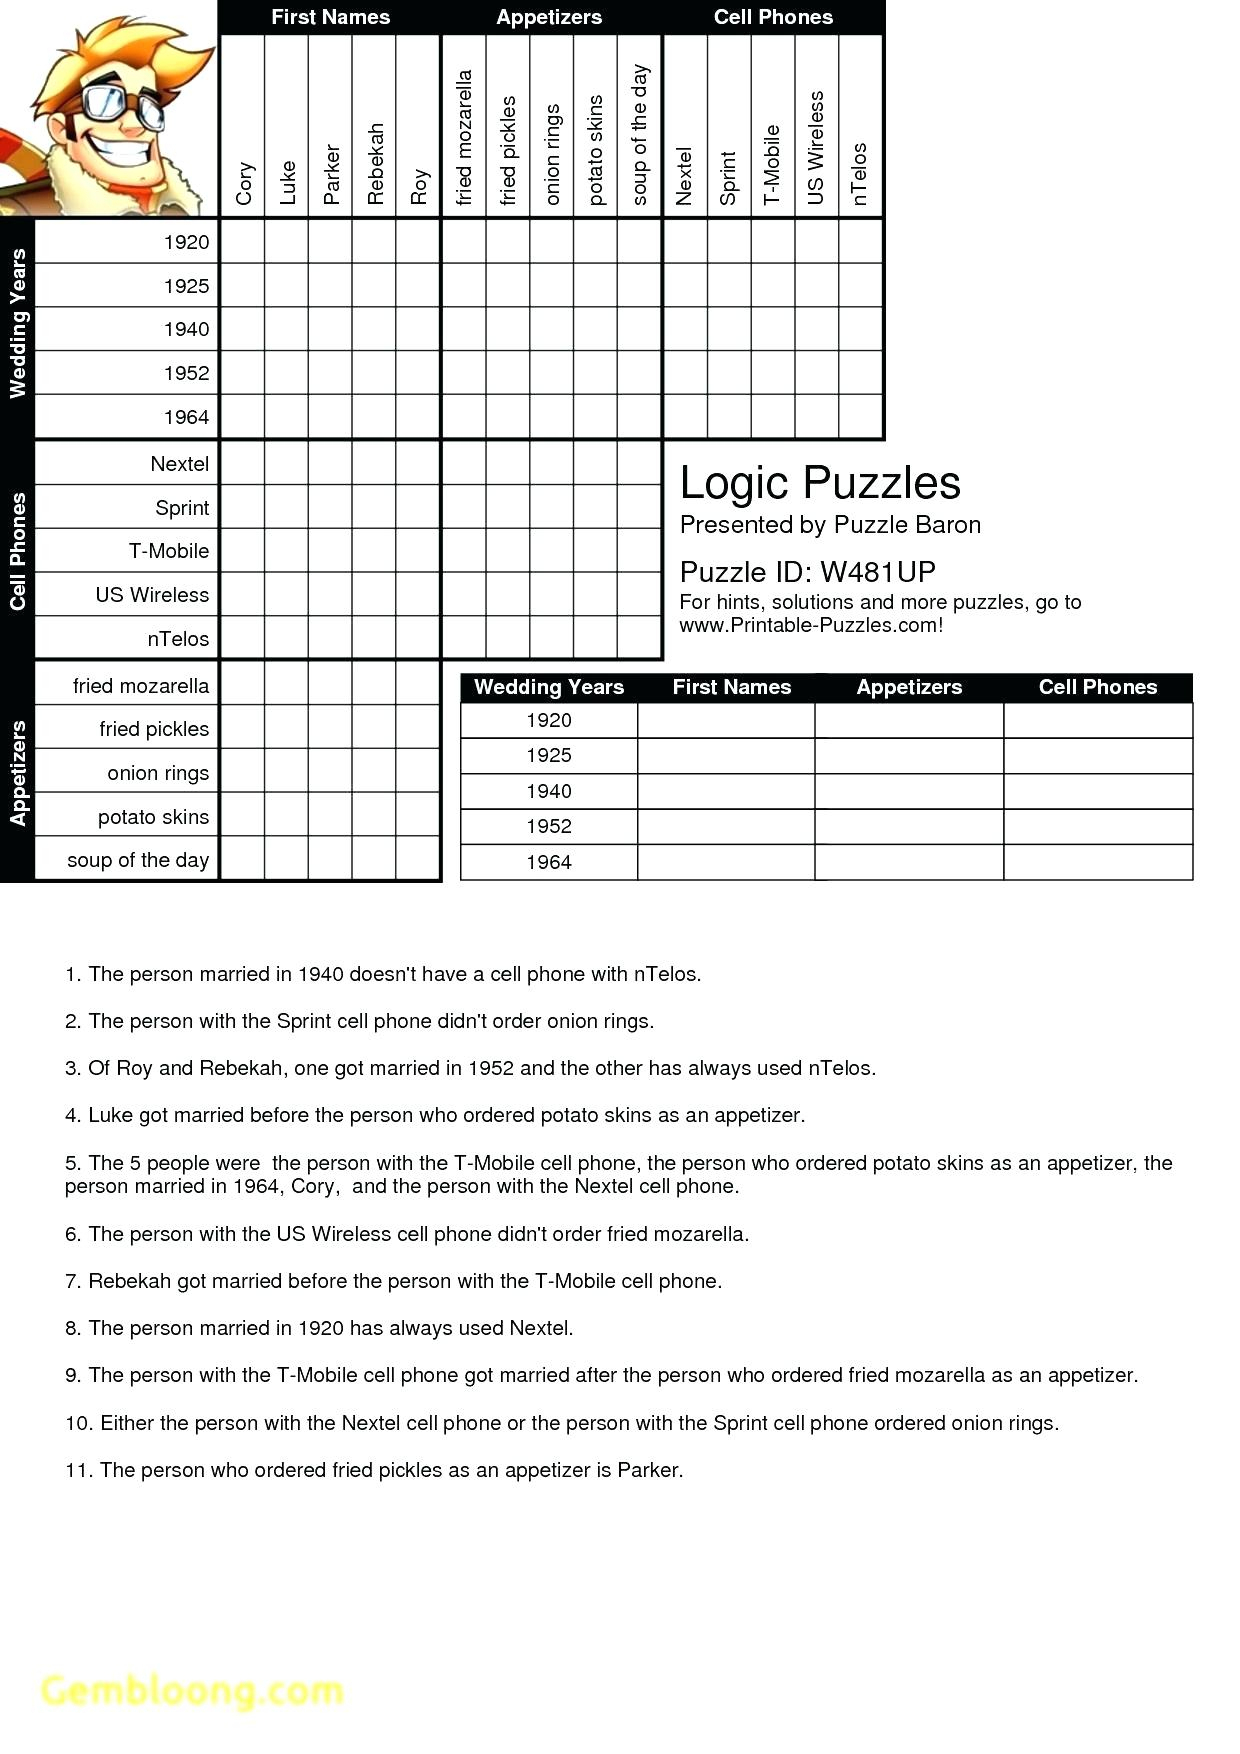 photograph regarding Logic Puzzles Printable called Printable Logic Puzzle Dingbat Rebus Puzzles Dingbats S